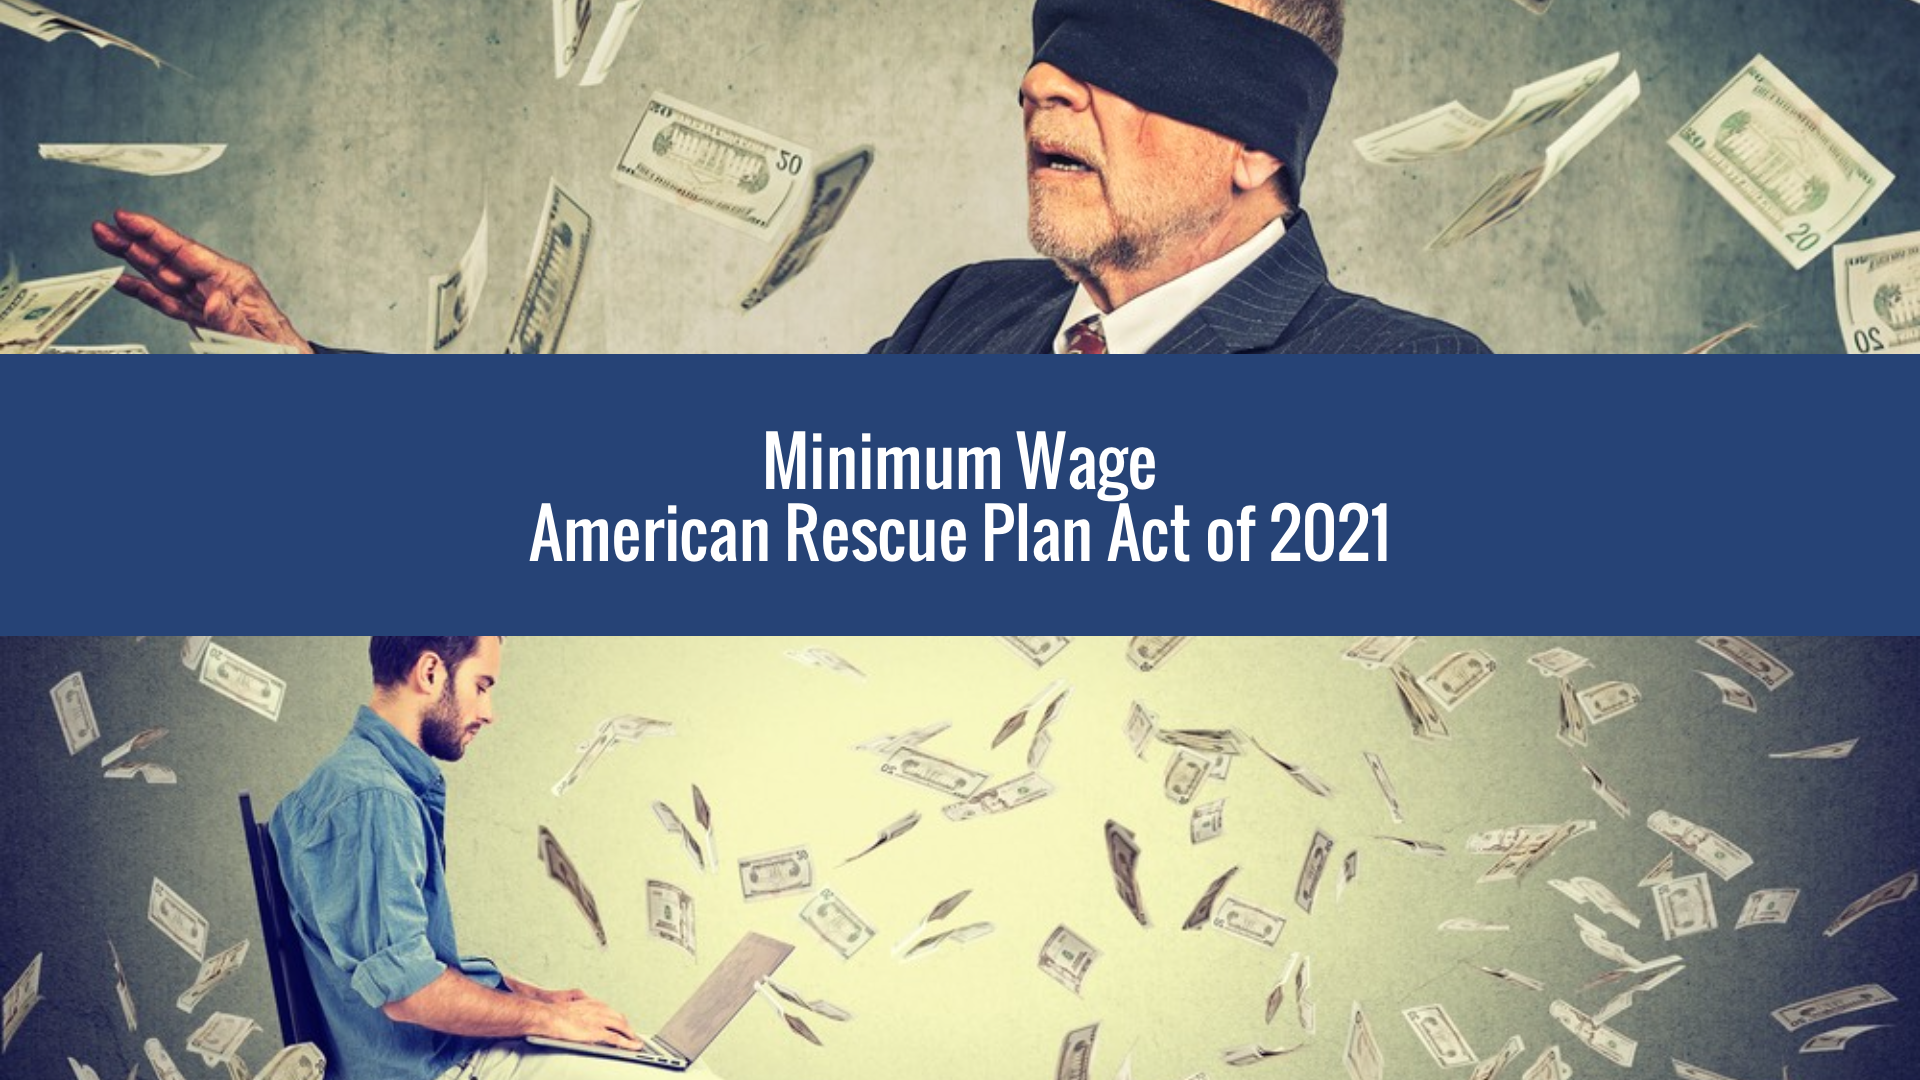 Businesses Face Increased Wage Costs & Risks From American Rescue Plan Act Of 2021 FLSA Minimum Wage Changes